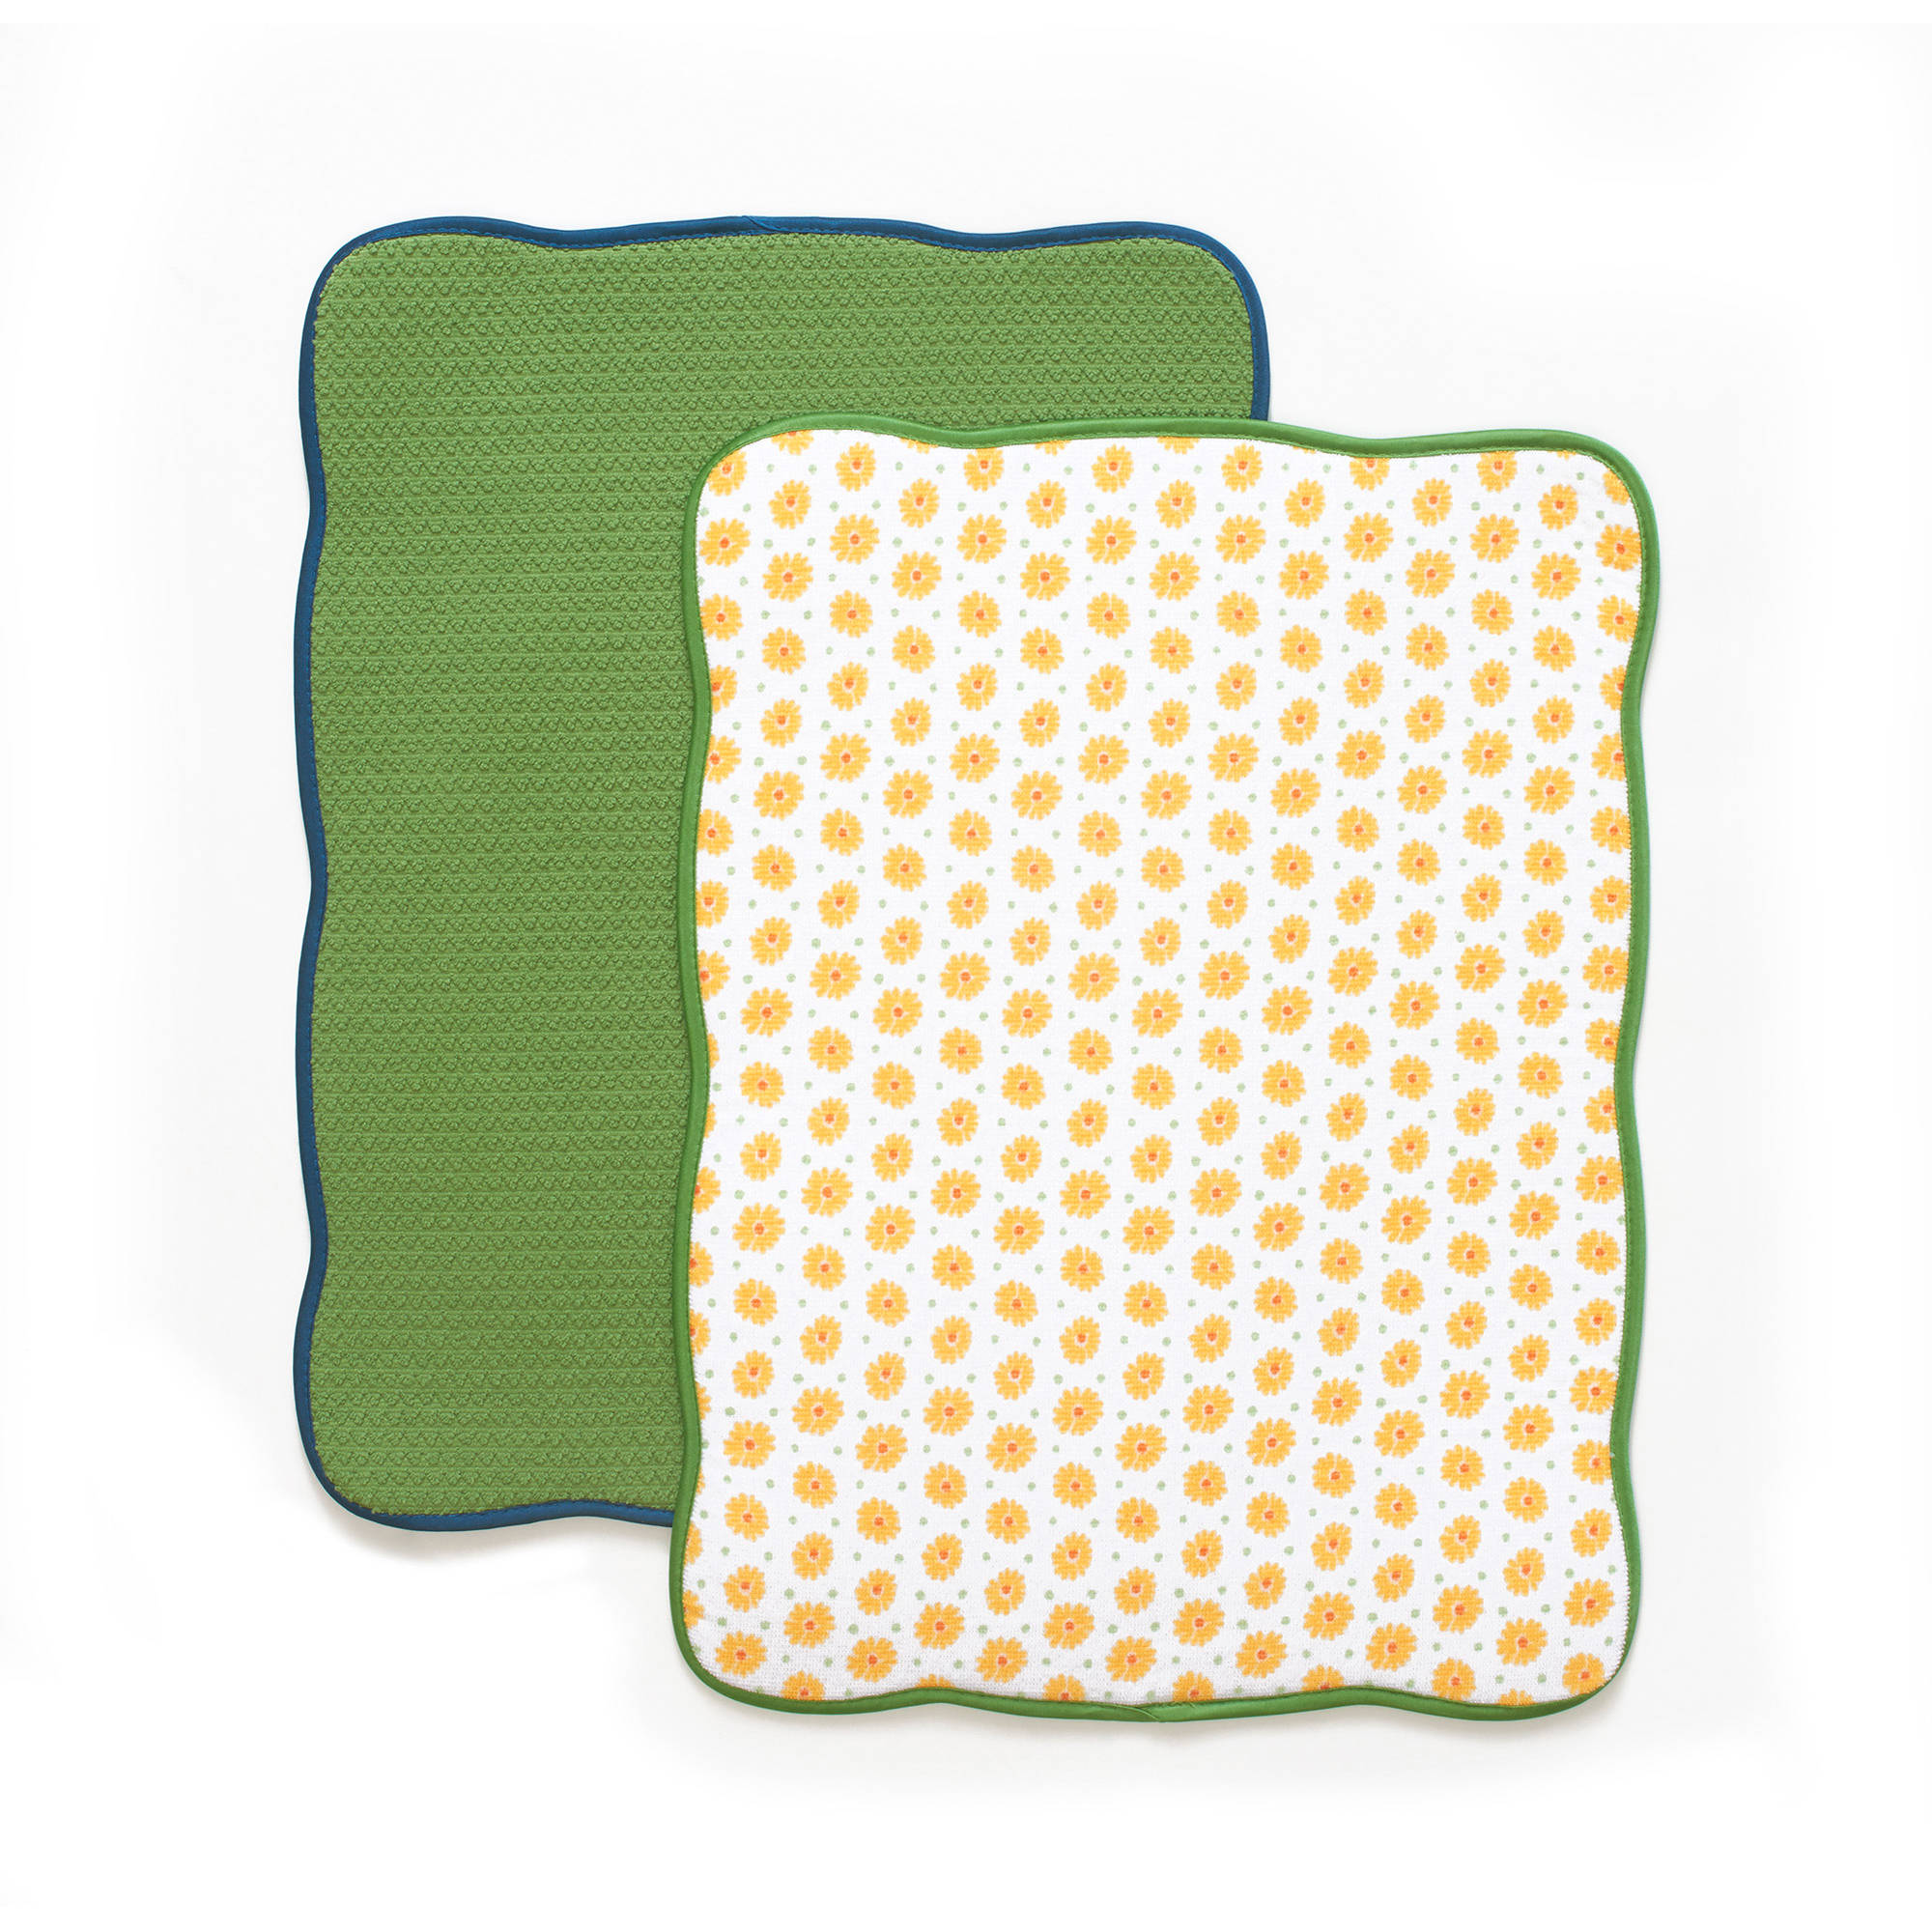 The Pioneer Woman Bright Daisy Reversible Dish Drying Mat, 2pk